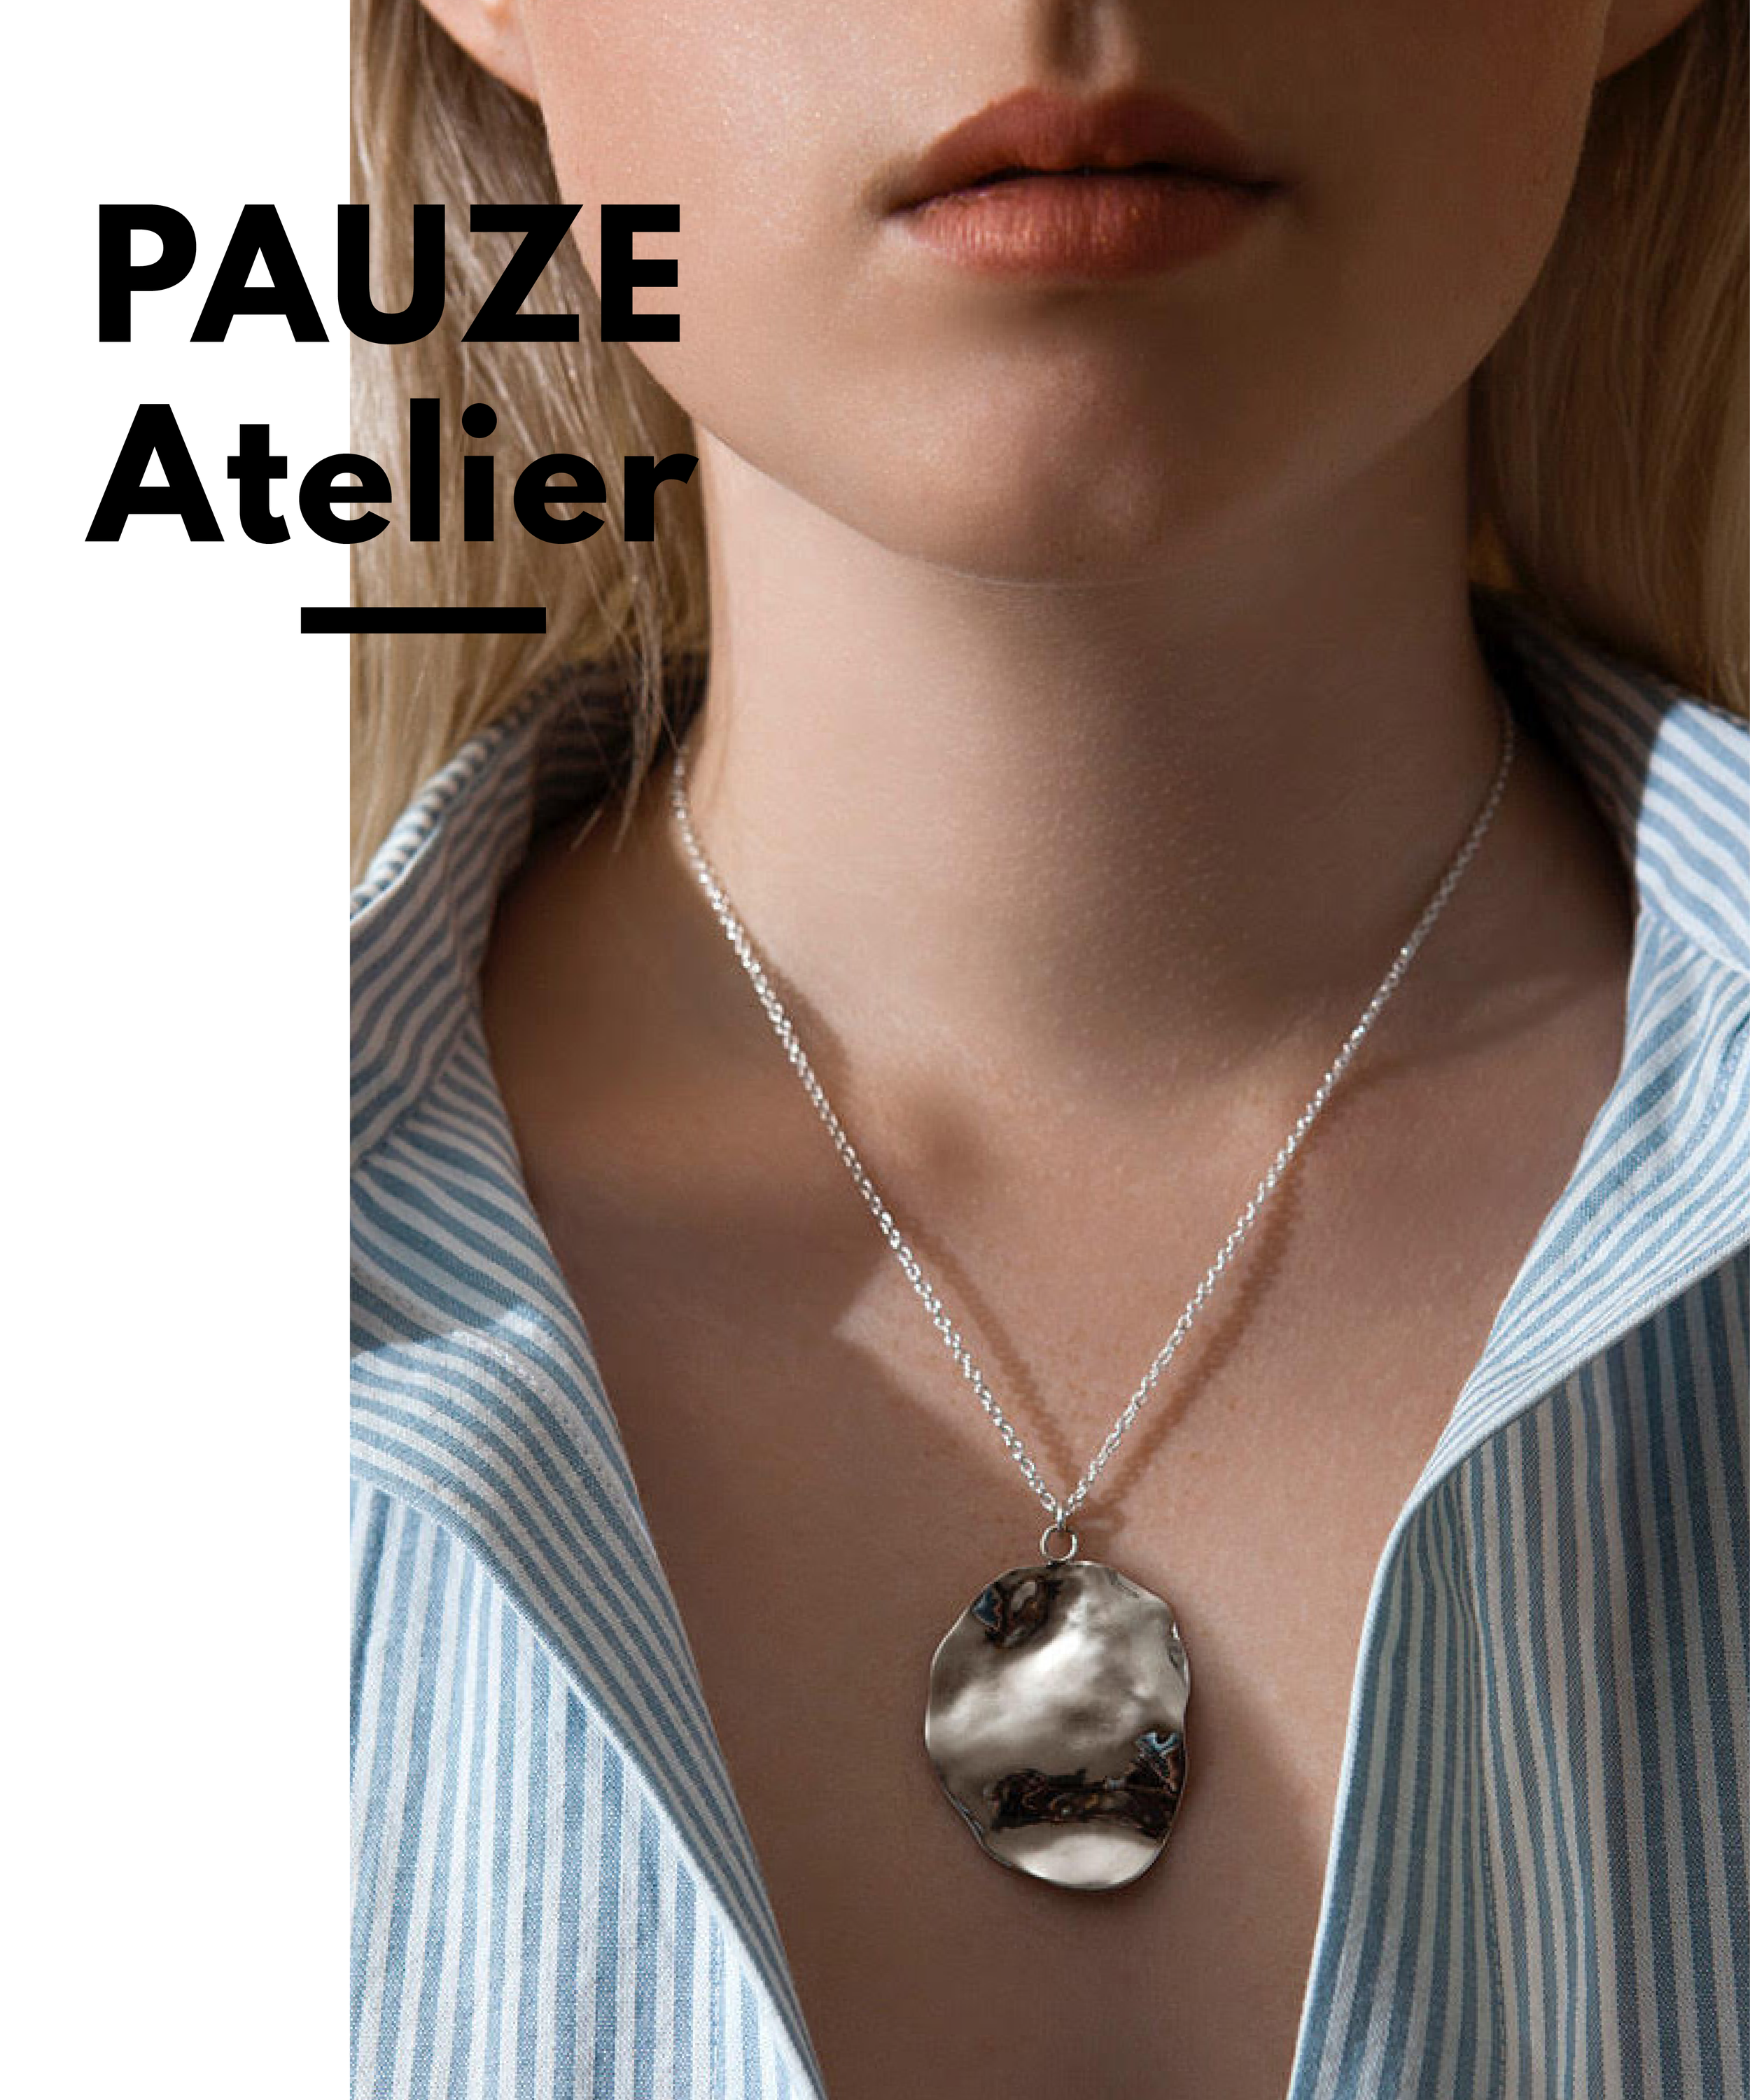 Shop PAUZE Atelier at the One of a Kind Show, March 27 - 31